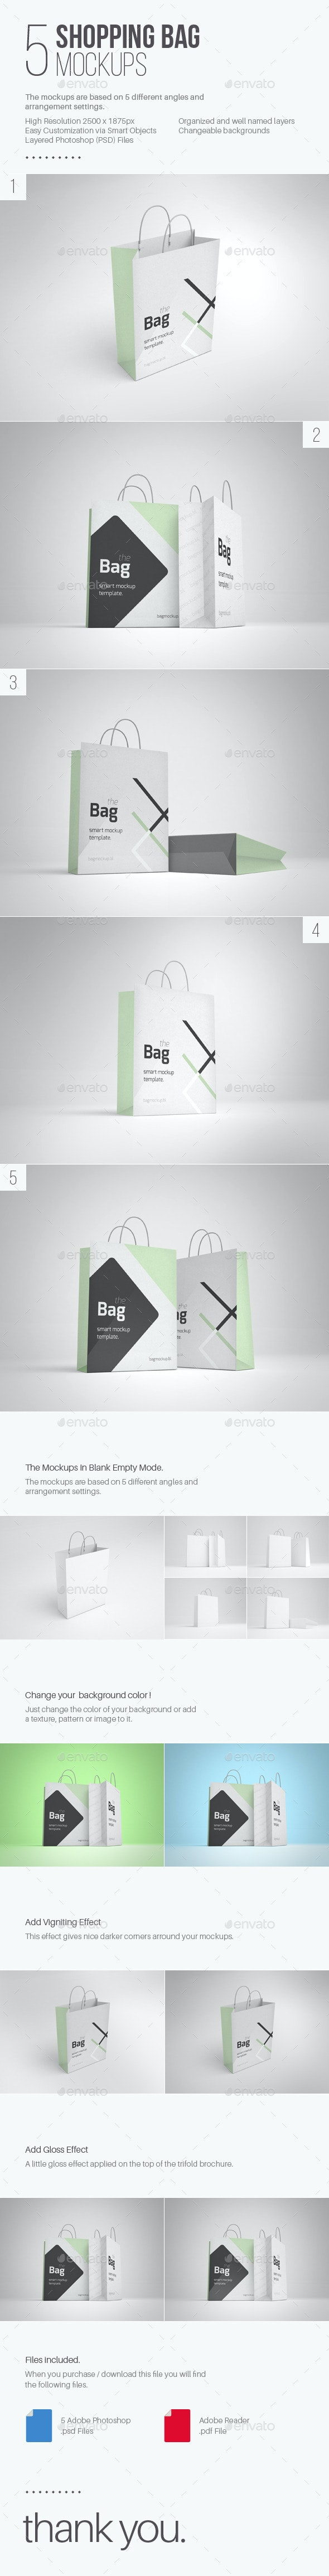 5 Shopping Bag Mockups - Miscellaneous Packaging